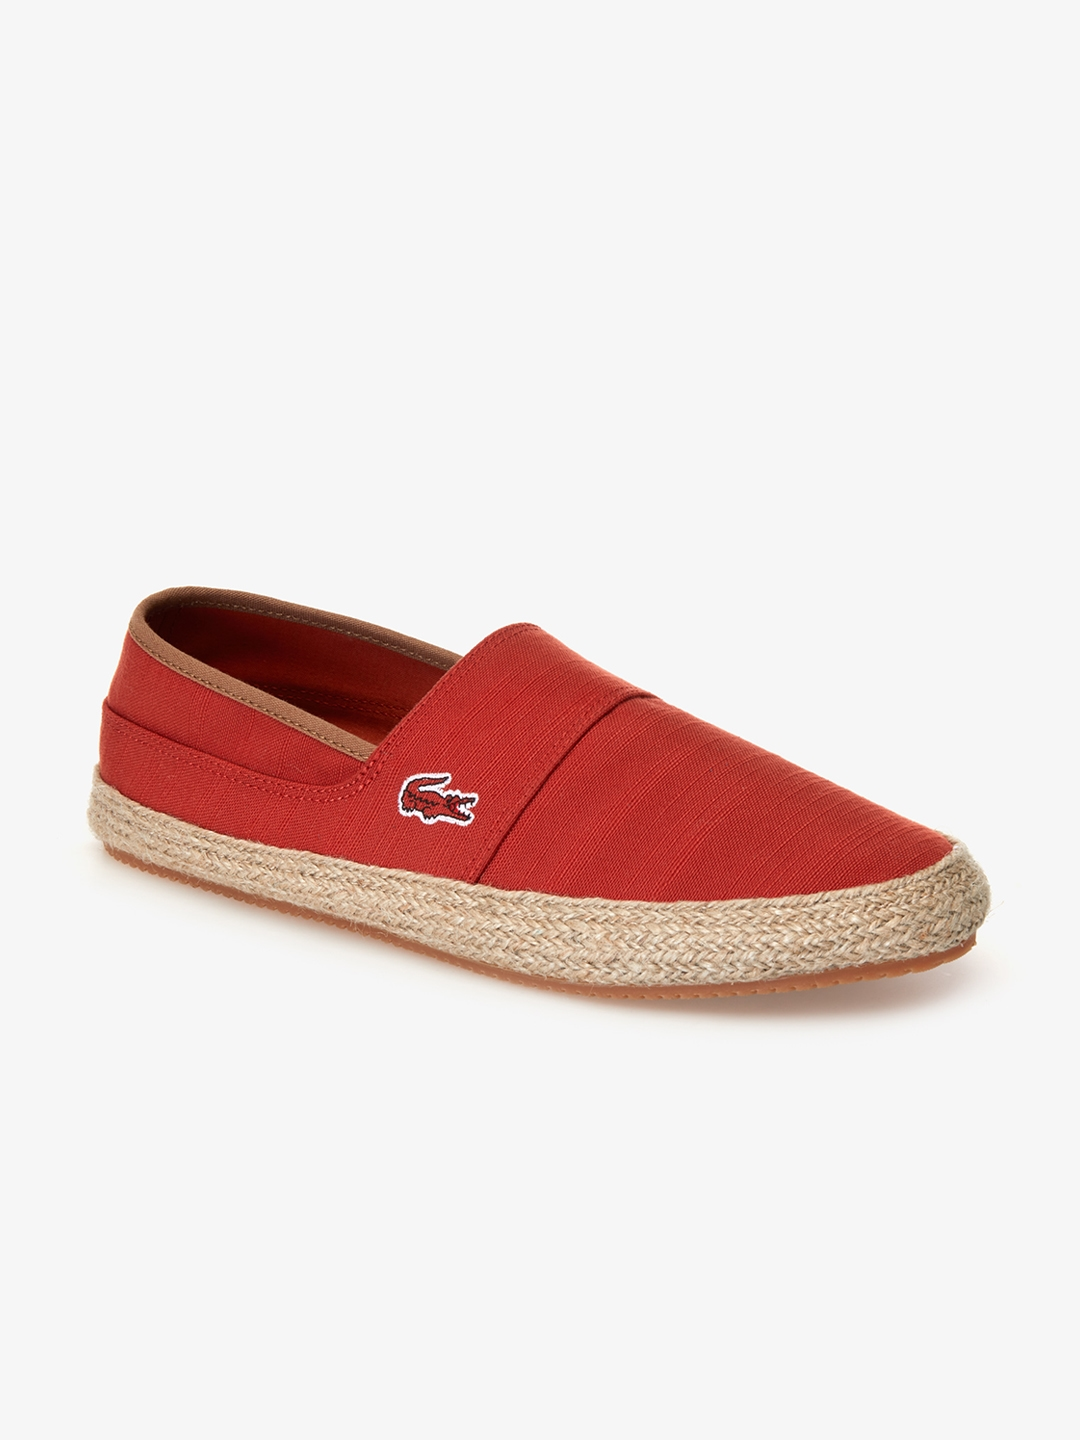 2e5ab3b73 Buy Lacoste Men Red Solid Espadrilles - Casual Shoes for Men 8985757 ...